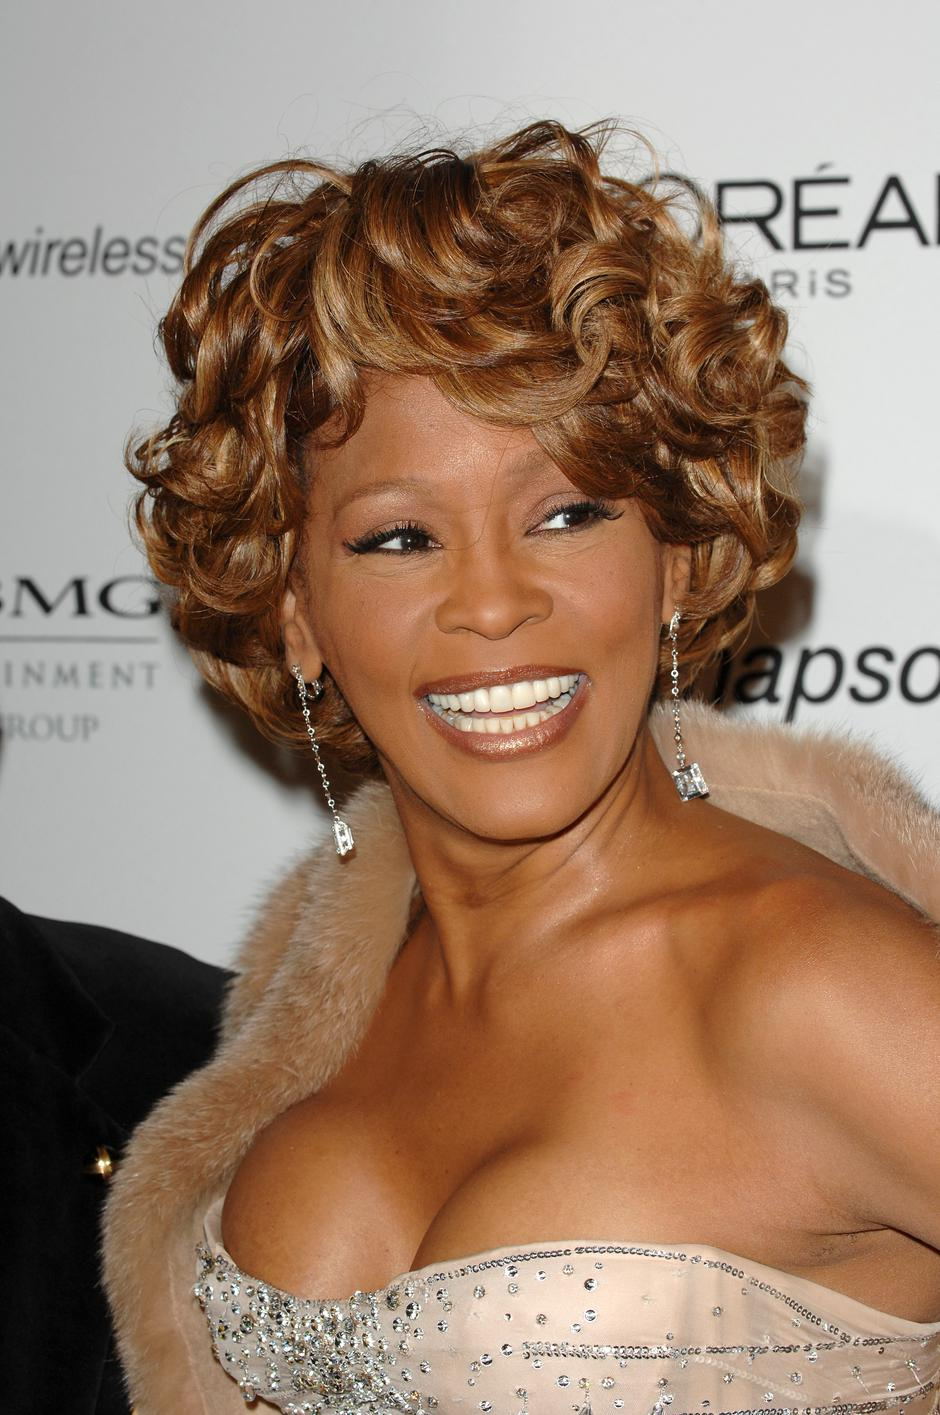 Whitney Houston died in L.A | Autor: Lionel Hahn/Press Association/PIXSELL